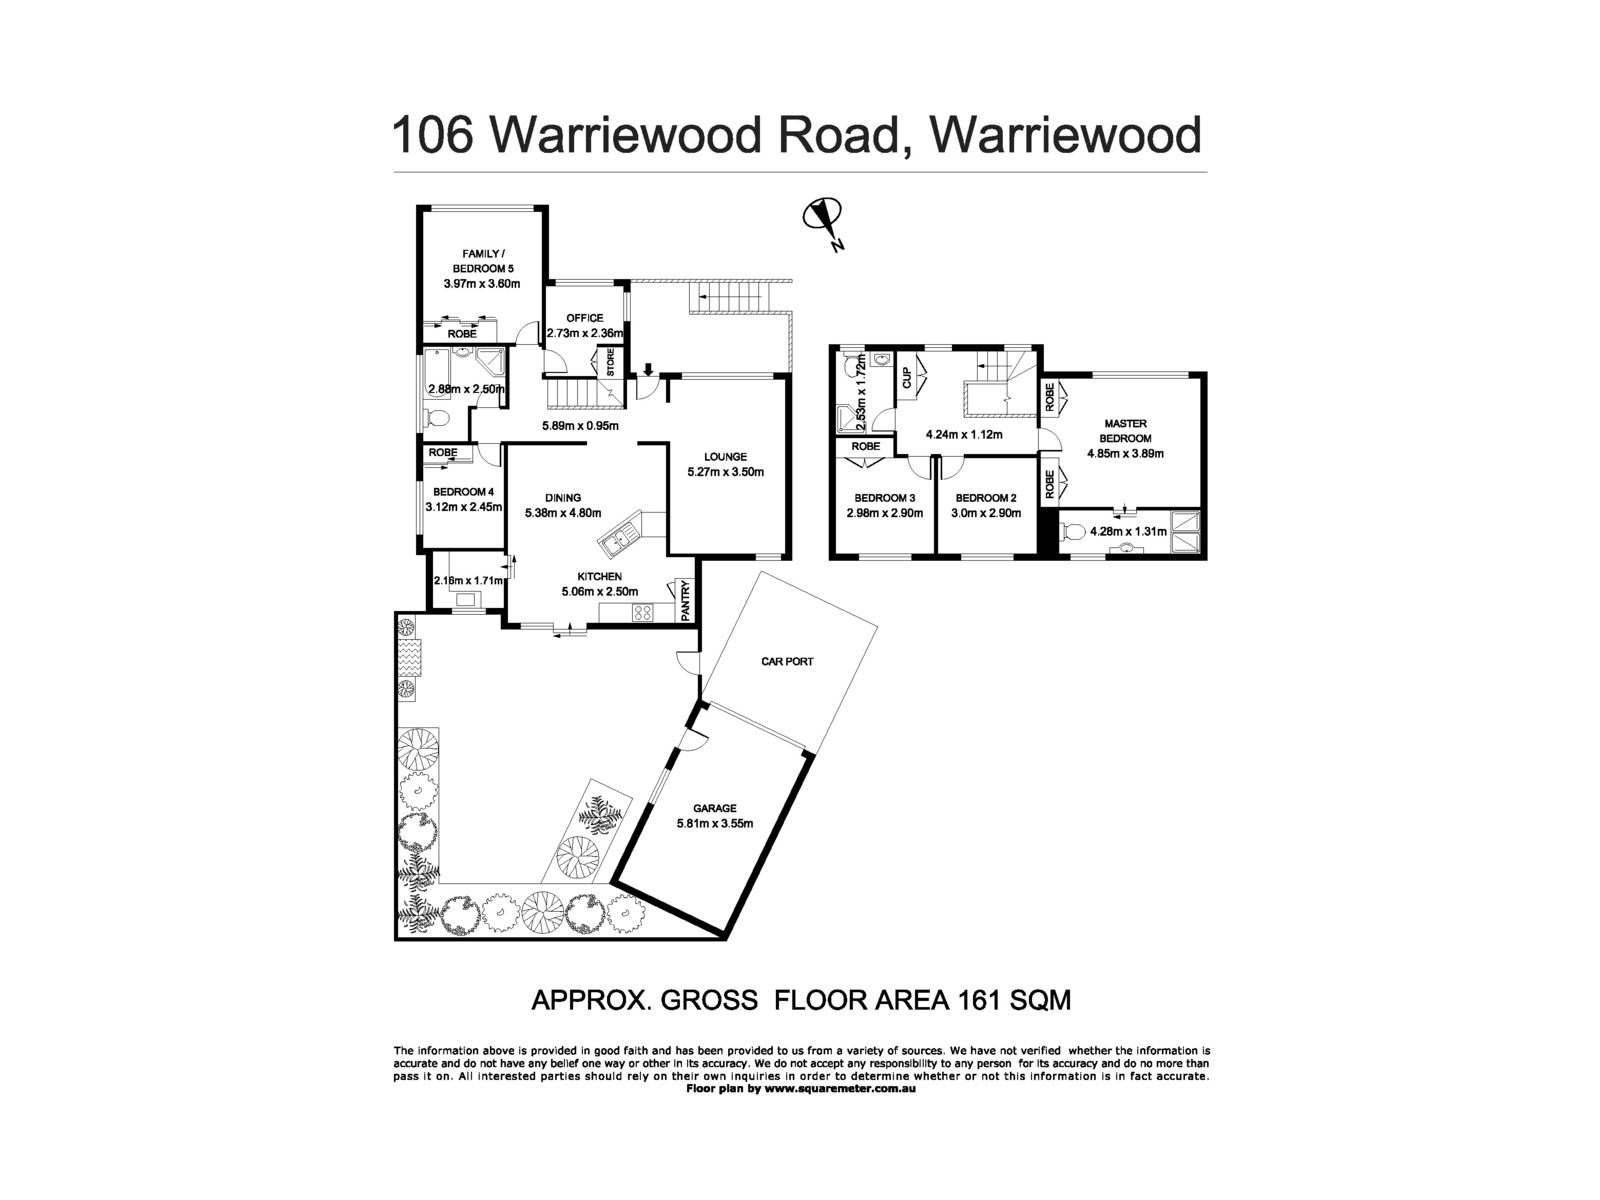 106 Warriewood Road, Warriewood